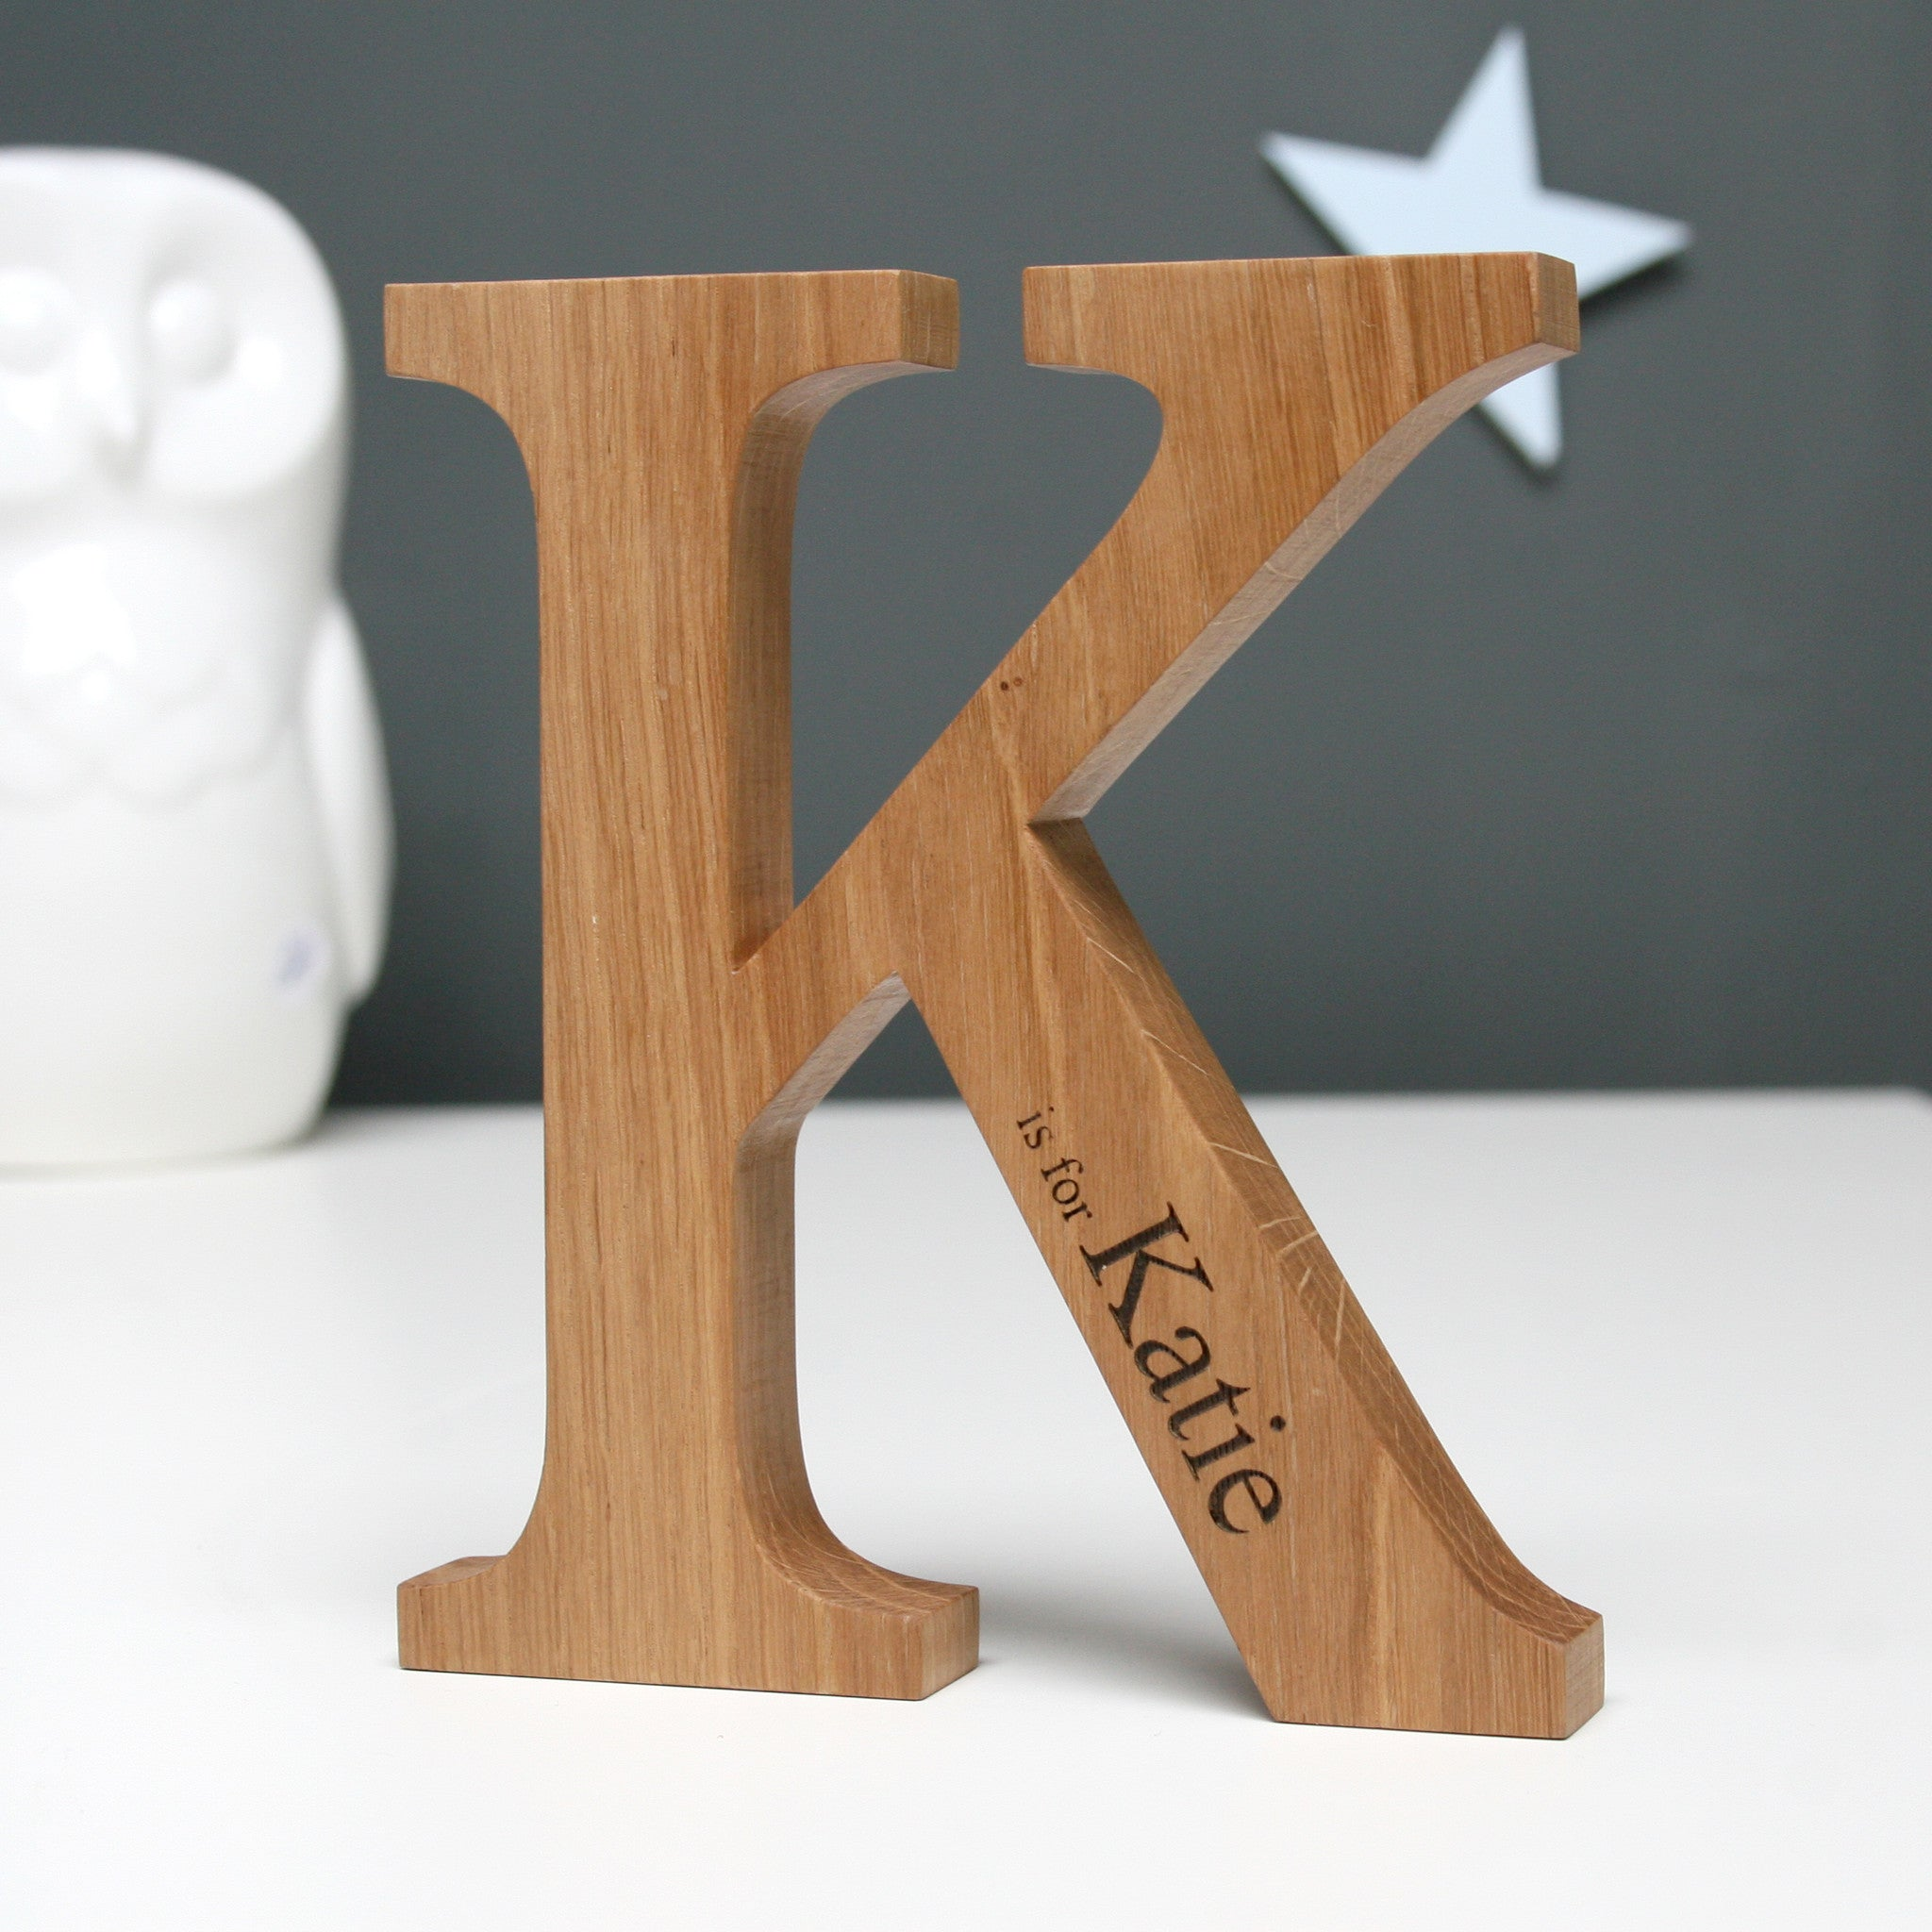 Modo Creative Design Bespoke Personalised Gifts for every occasion